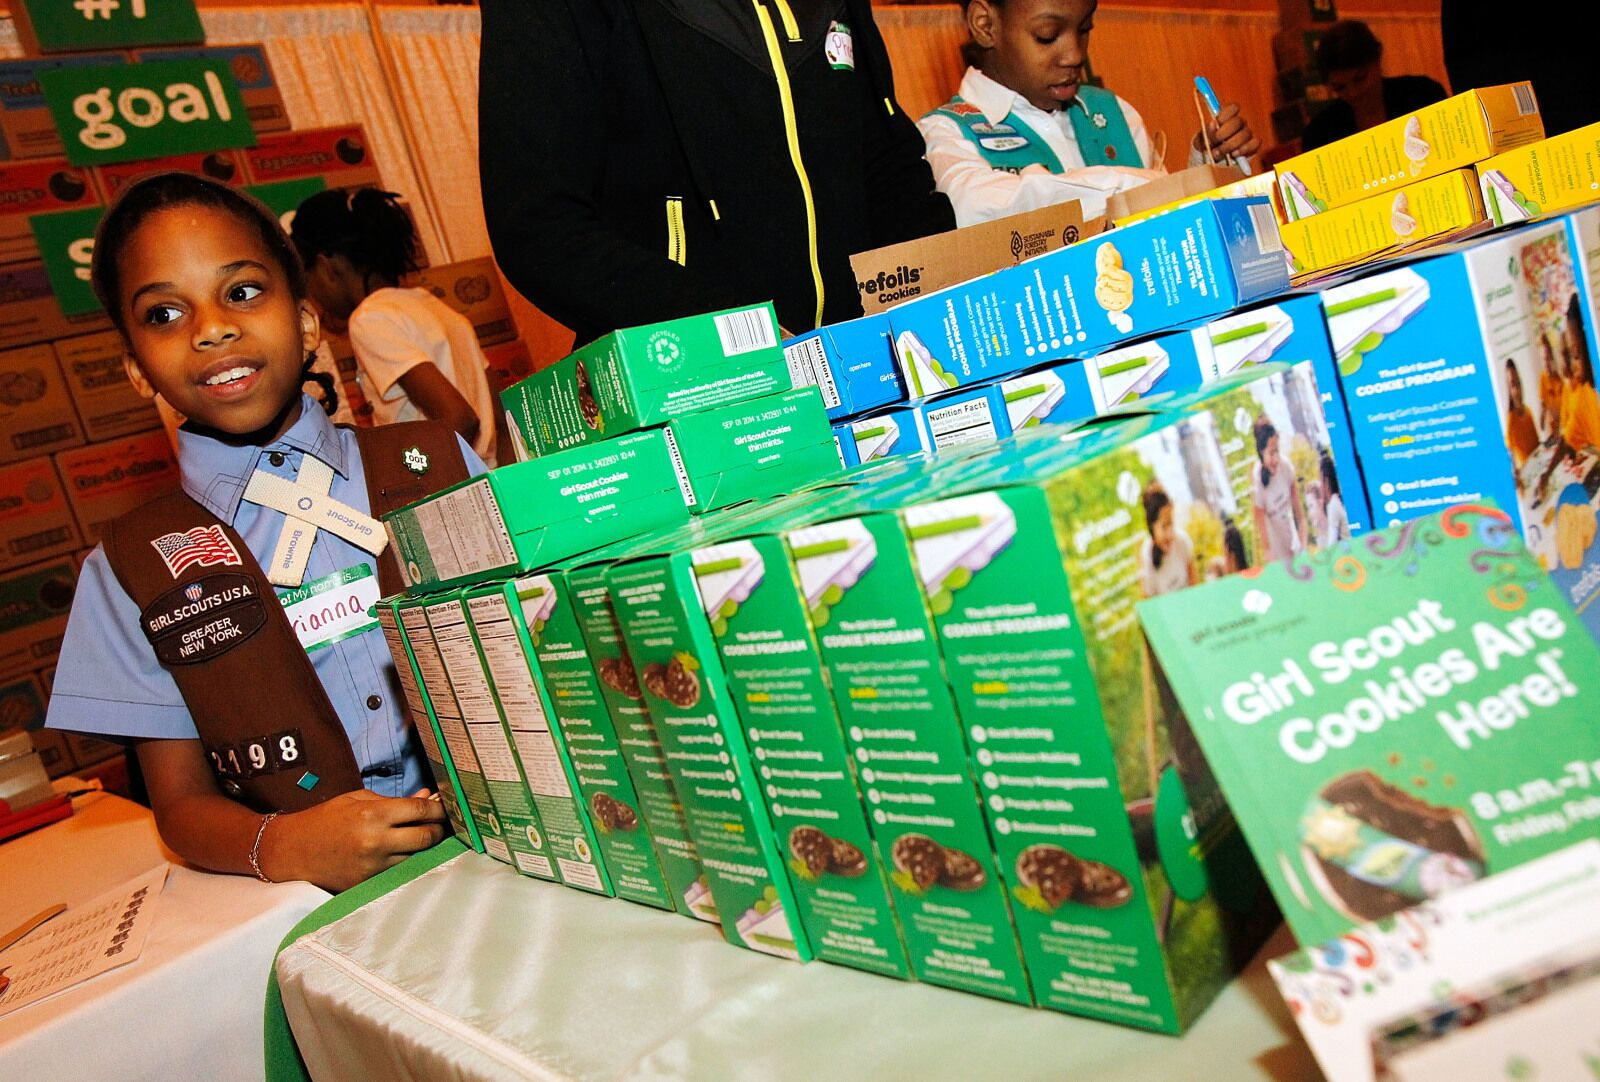 Girl Scout Cookies have Wisconsin police issuing hilarious warning